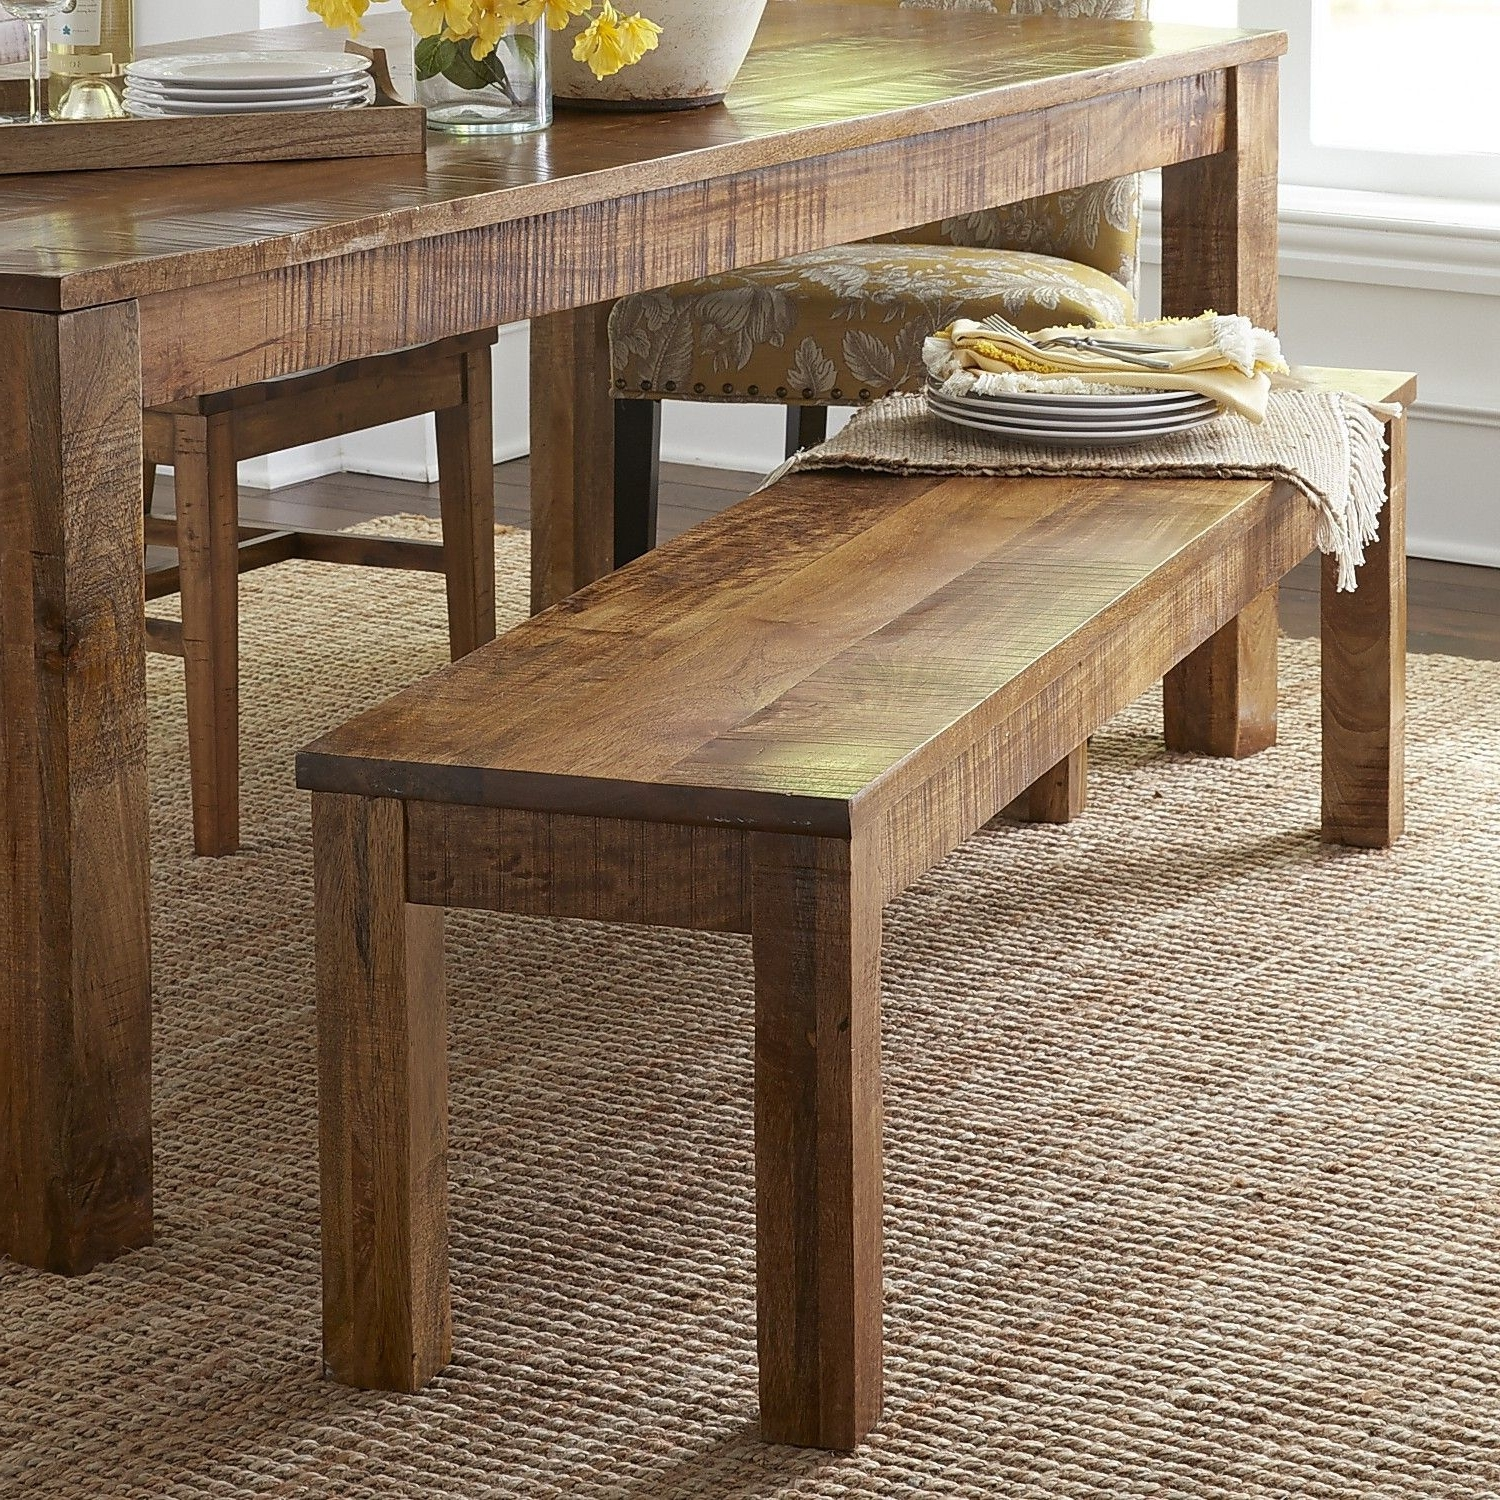 Java Dining Tables Regarding Well Known Parsons Java Dining Bench (Gallery 10 of 25)